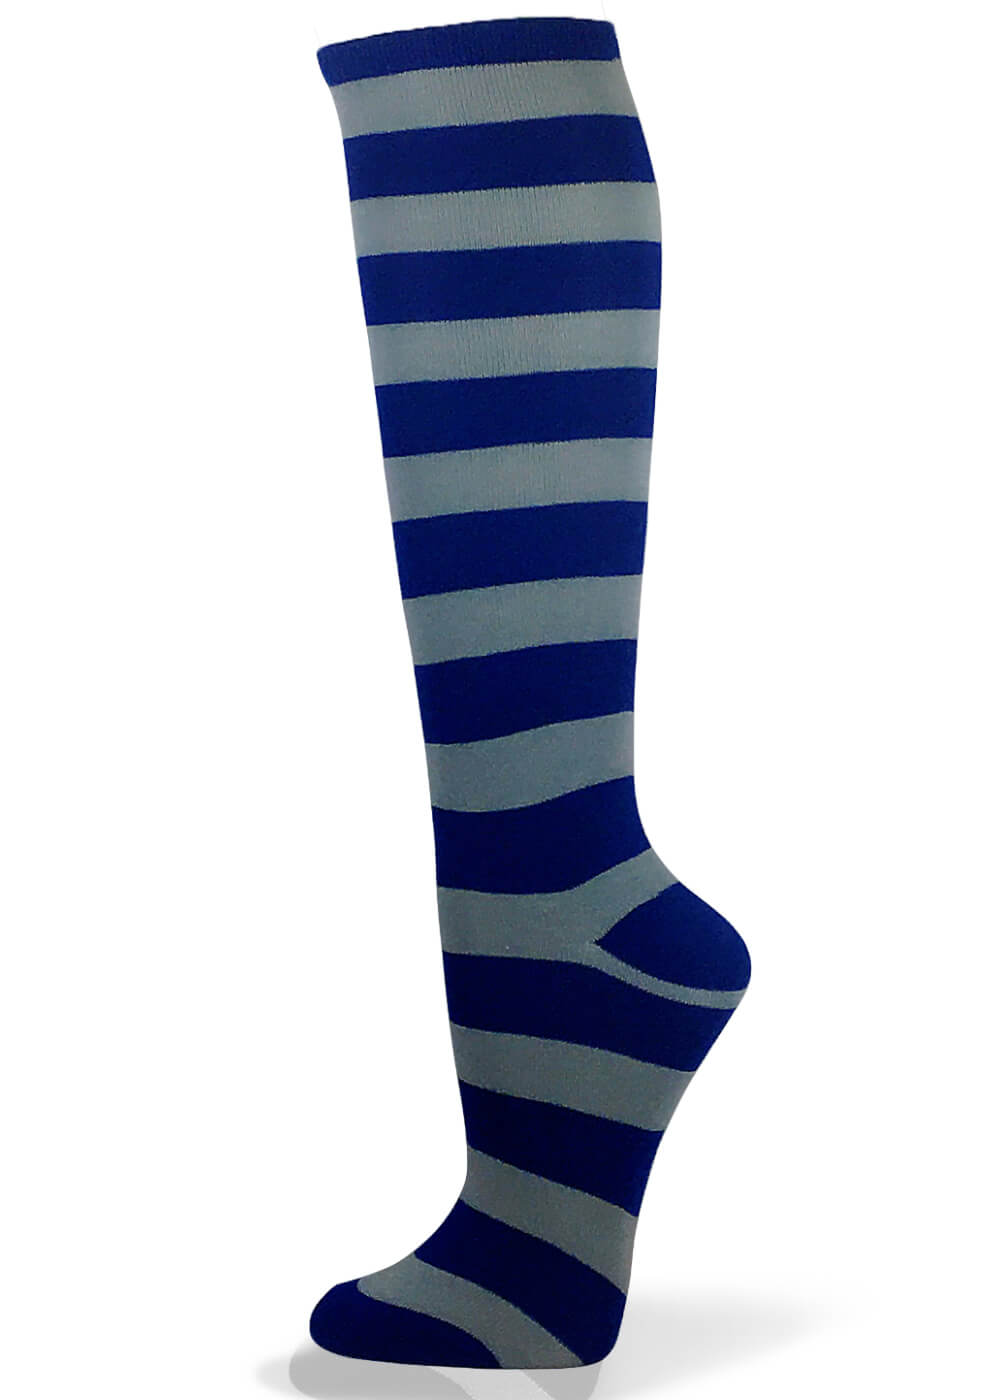 Couver Unisex Halloween Colorfull 2 Colored Wider Striped Knee High Socks - Blue / Light Gray